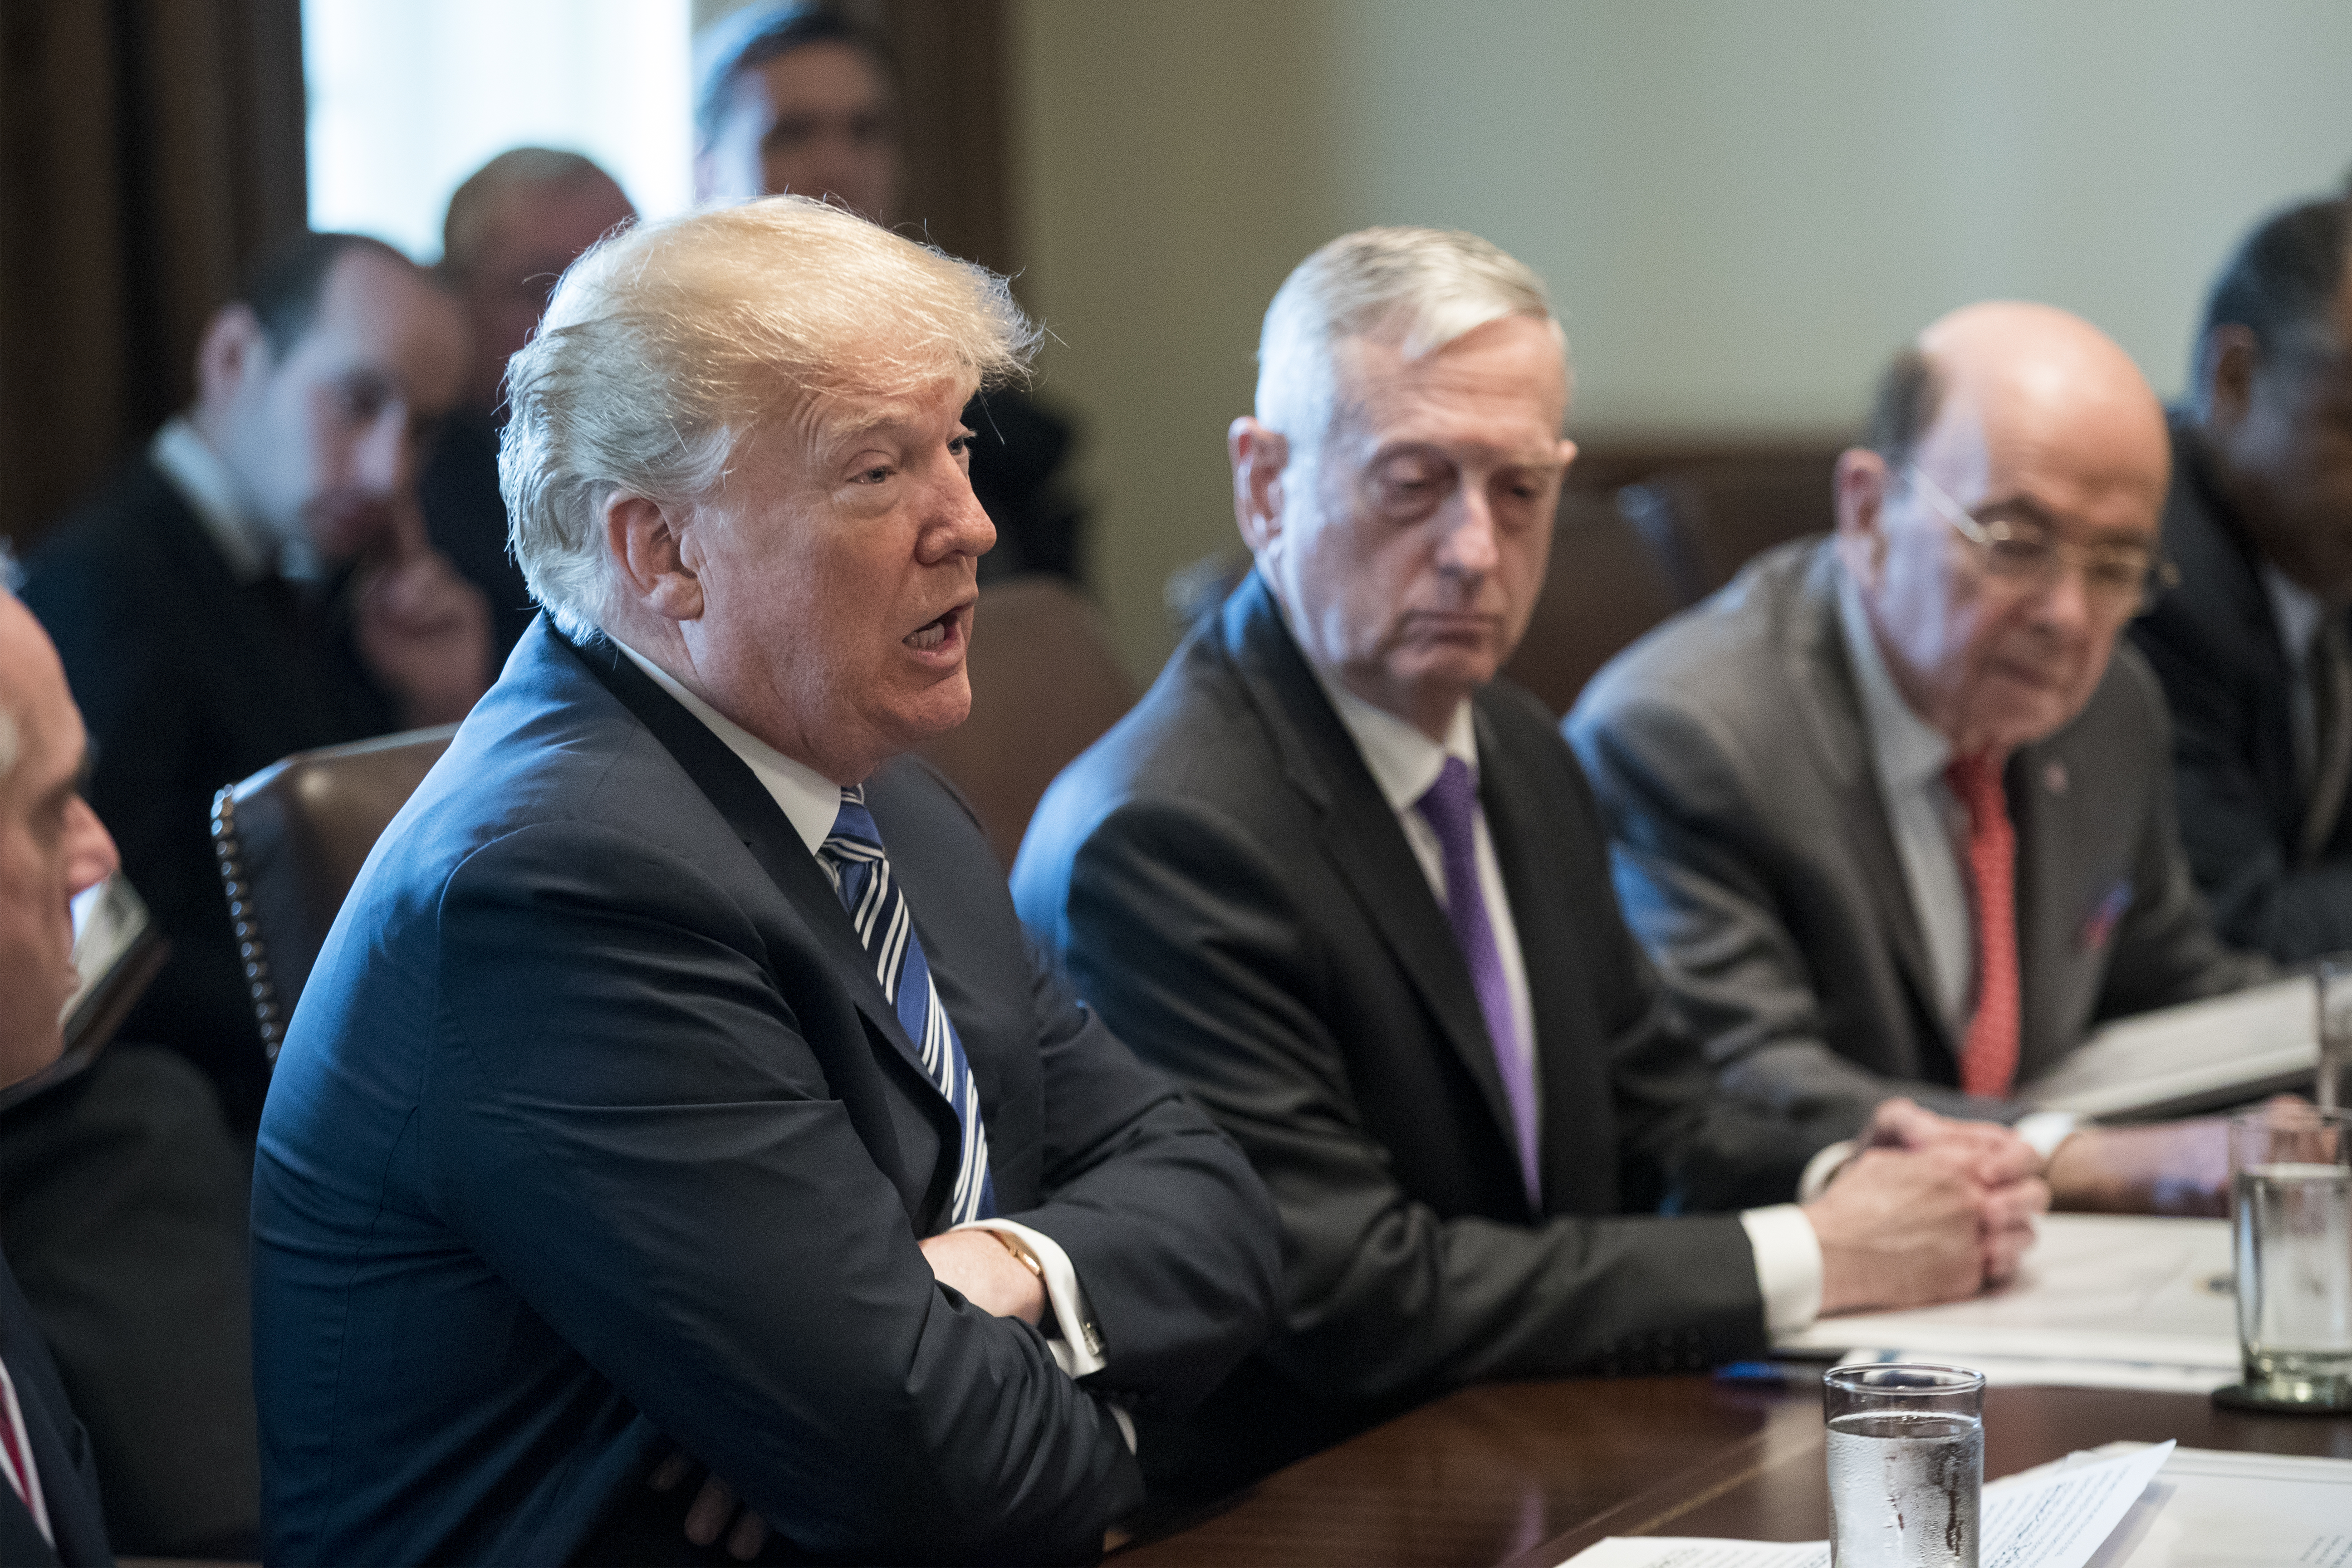 President Donald Trump (L) speaks beside US Secretary of Defense Jim Mattis (C) during a meeting with members of his Cabinet on March 8, 2018.